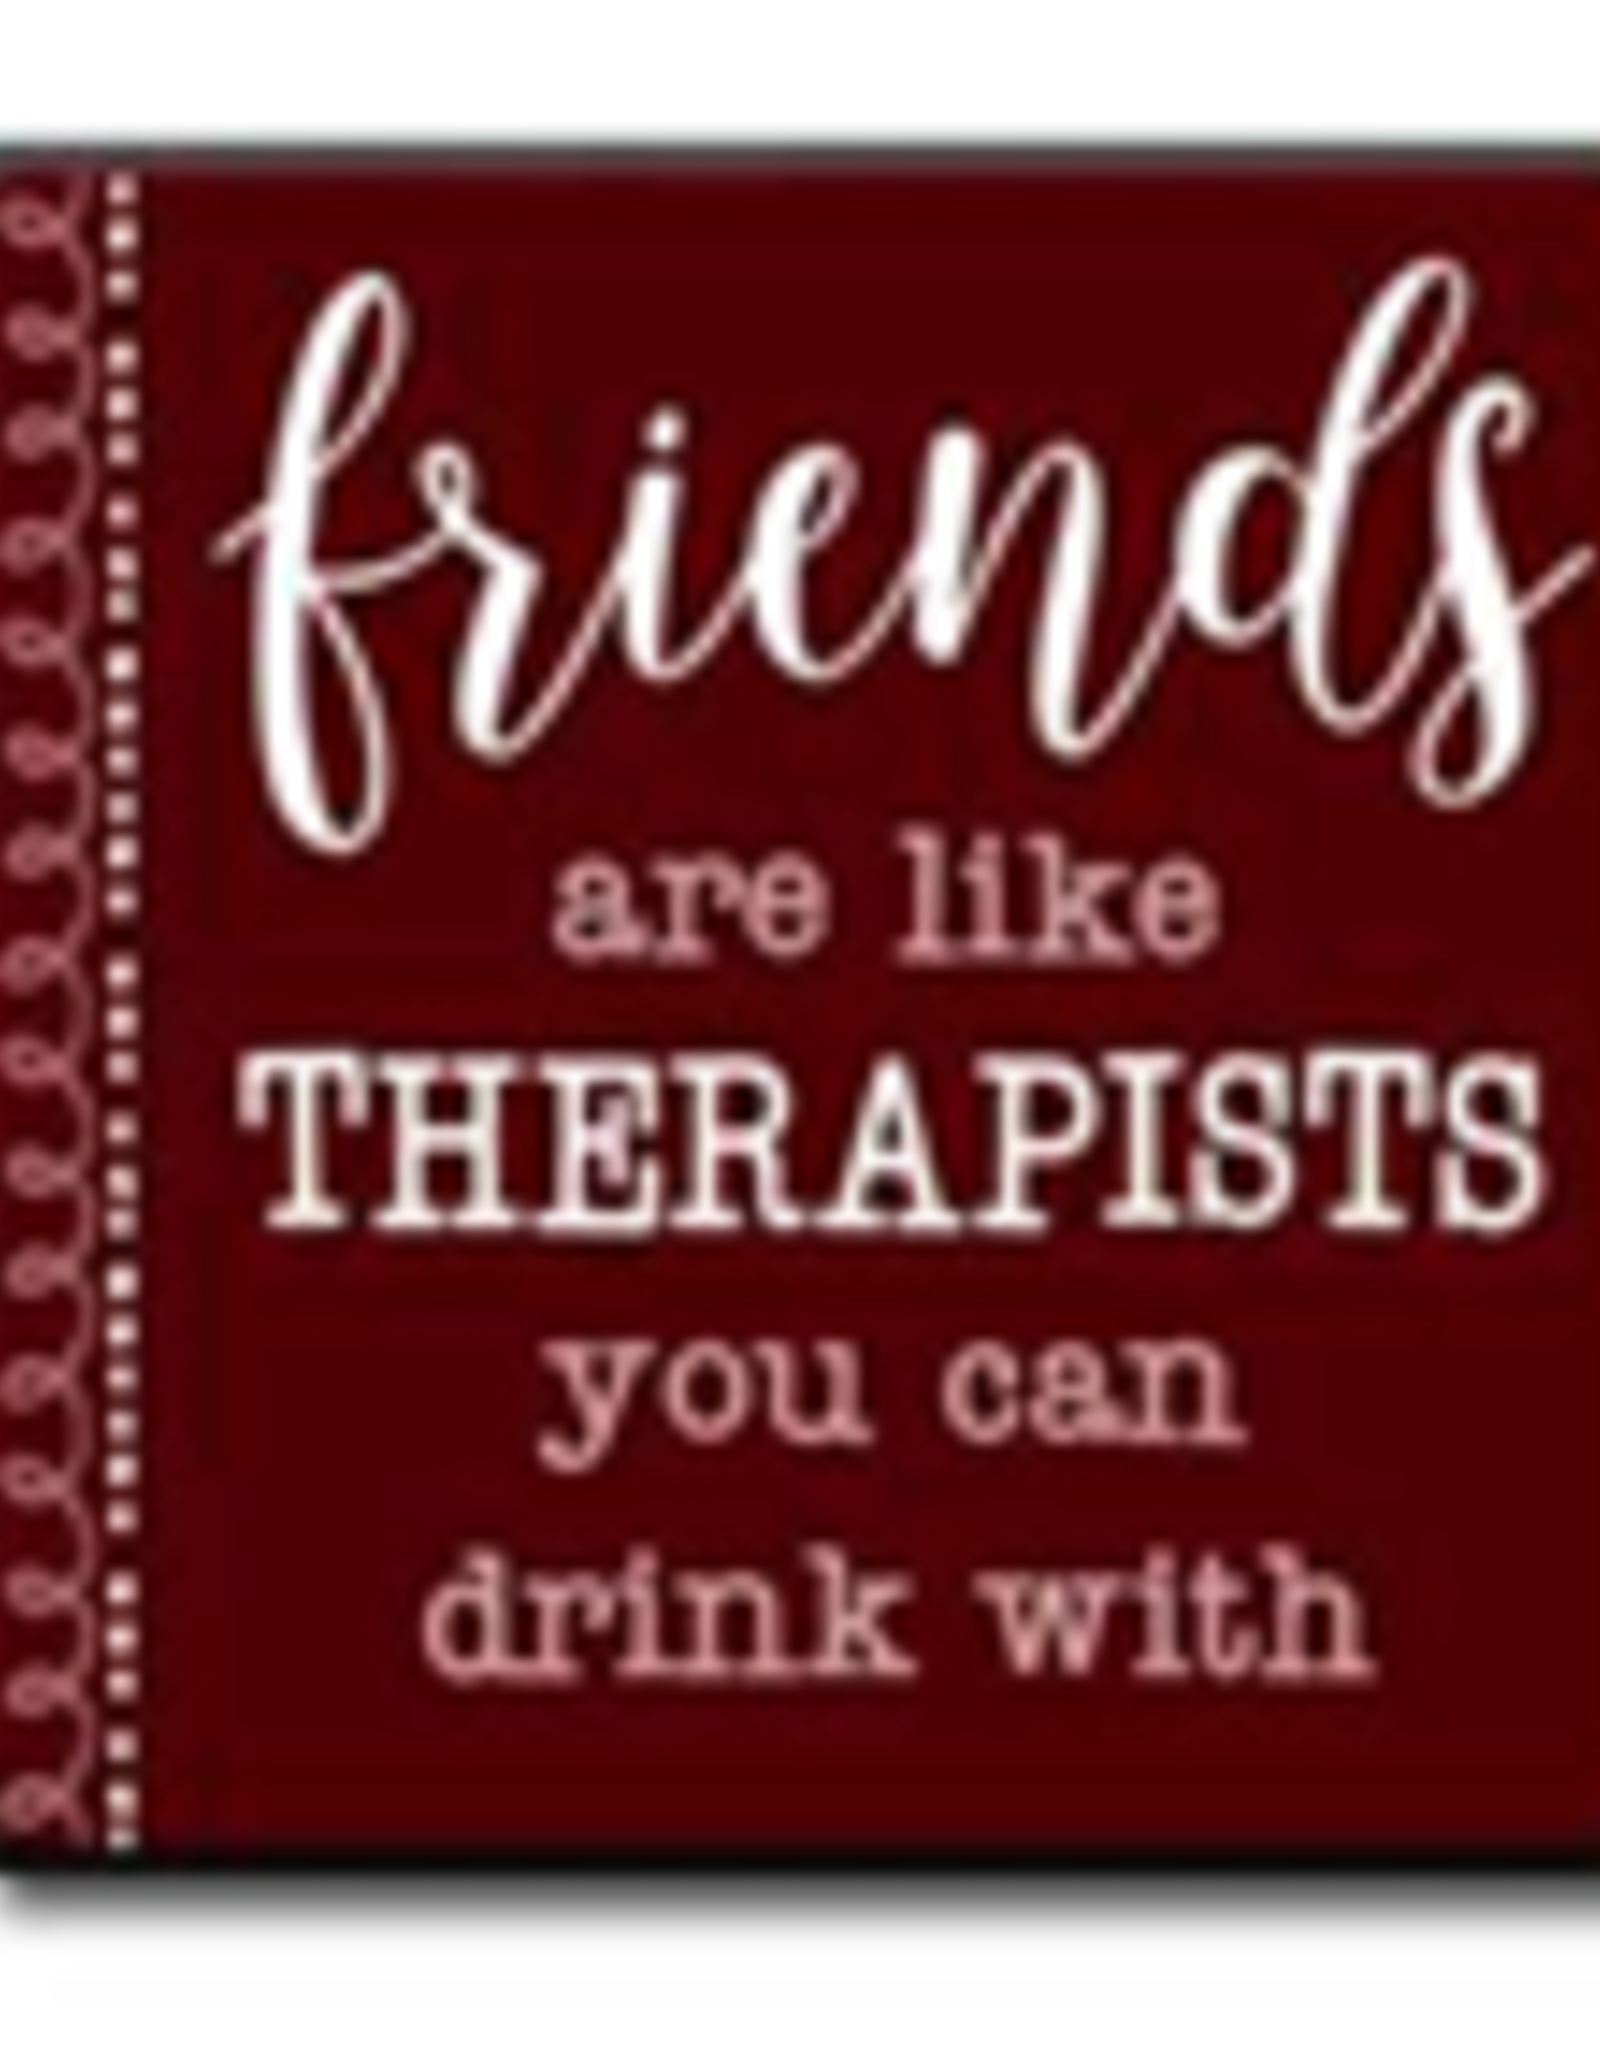 Friends Are Like Therapists You Can Drink With 4x4